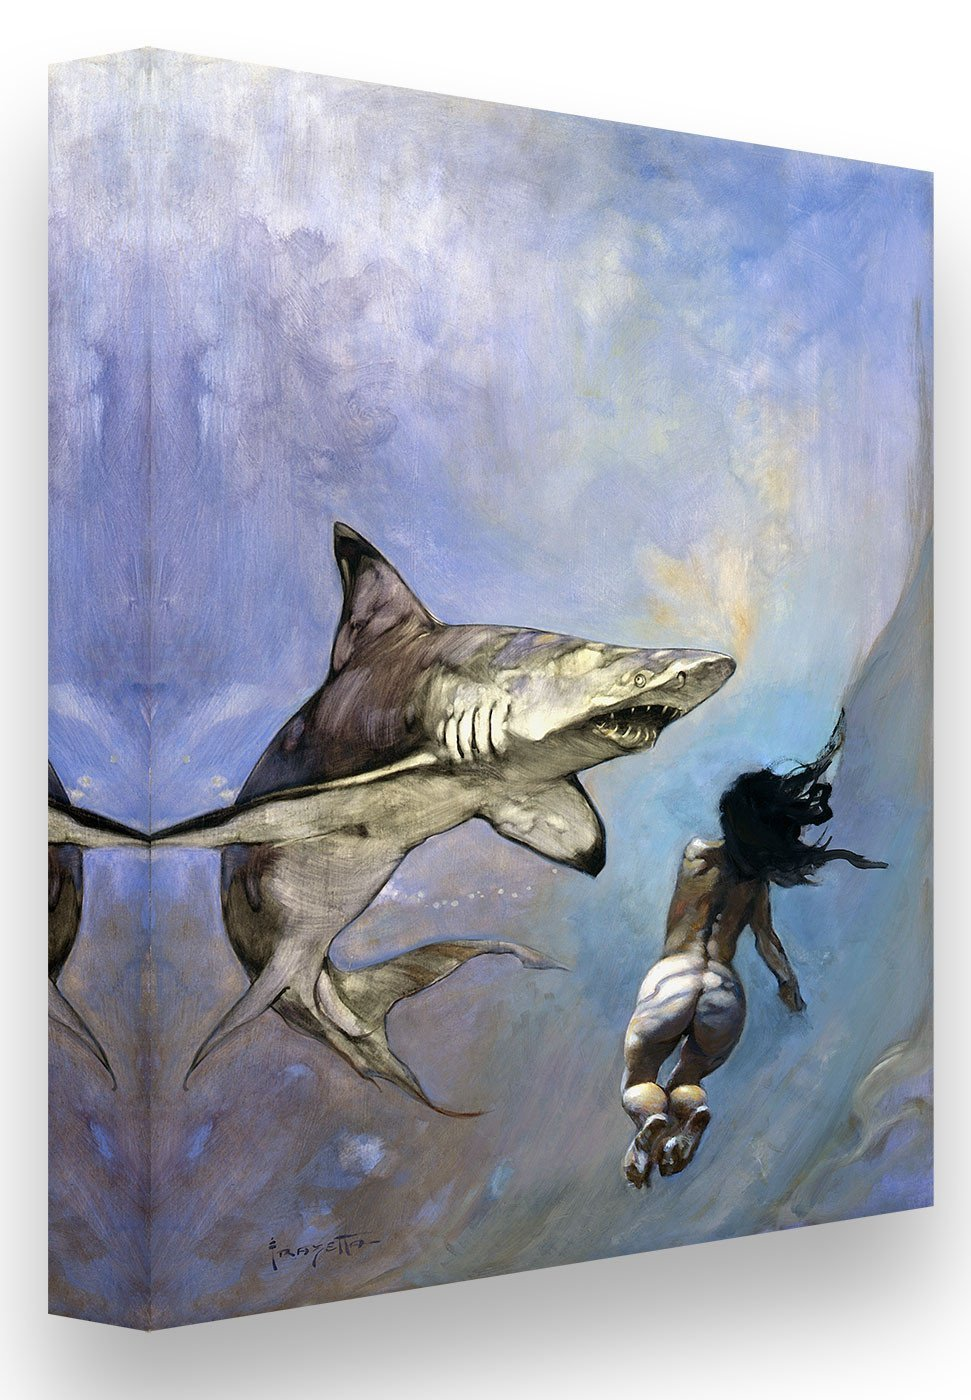 FrazettaGirls Art Print Canvas / Stretched on wooden bar / 18x24 Requiem for a Shark Print